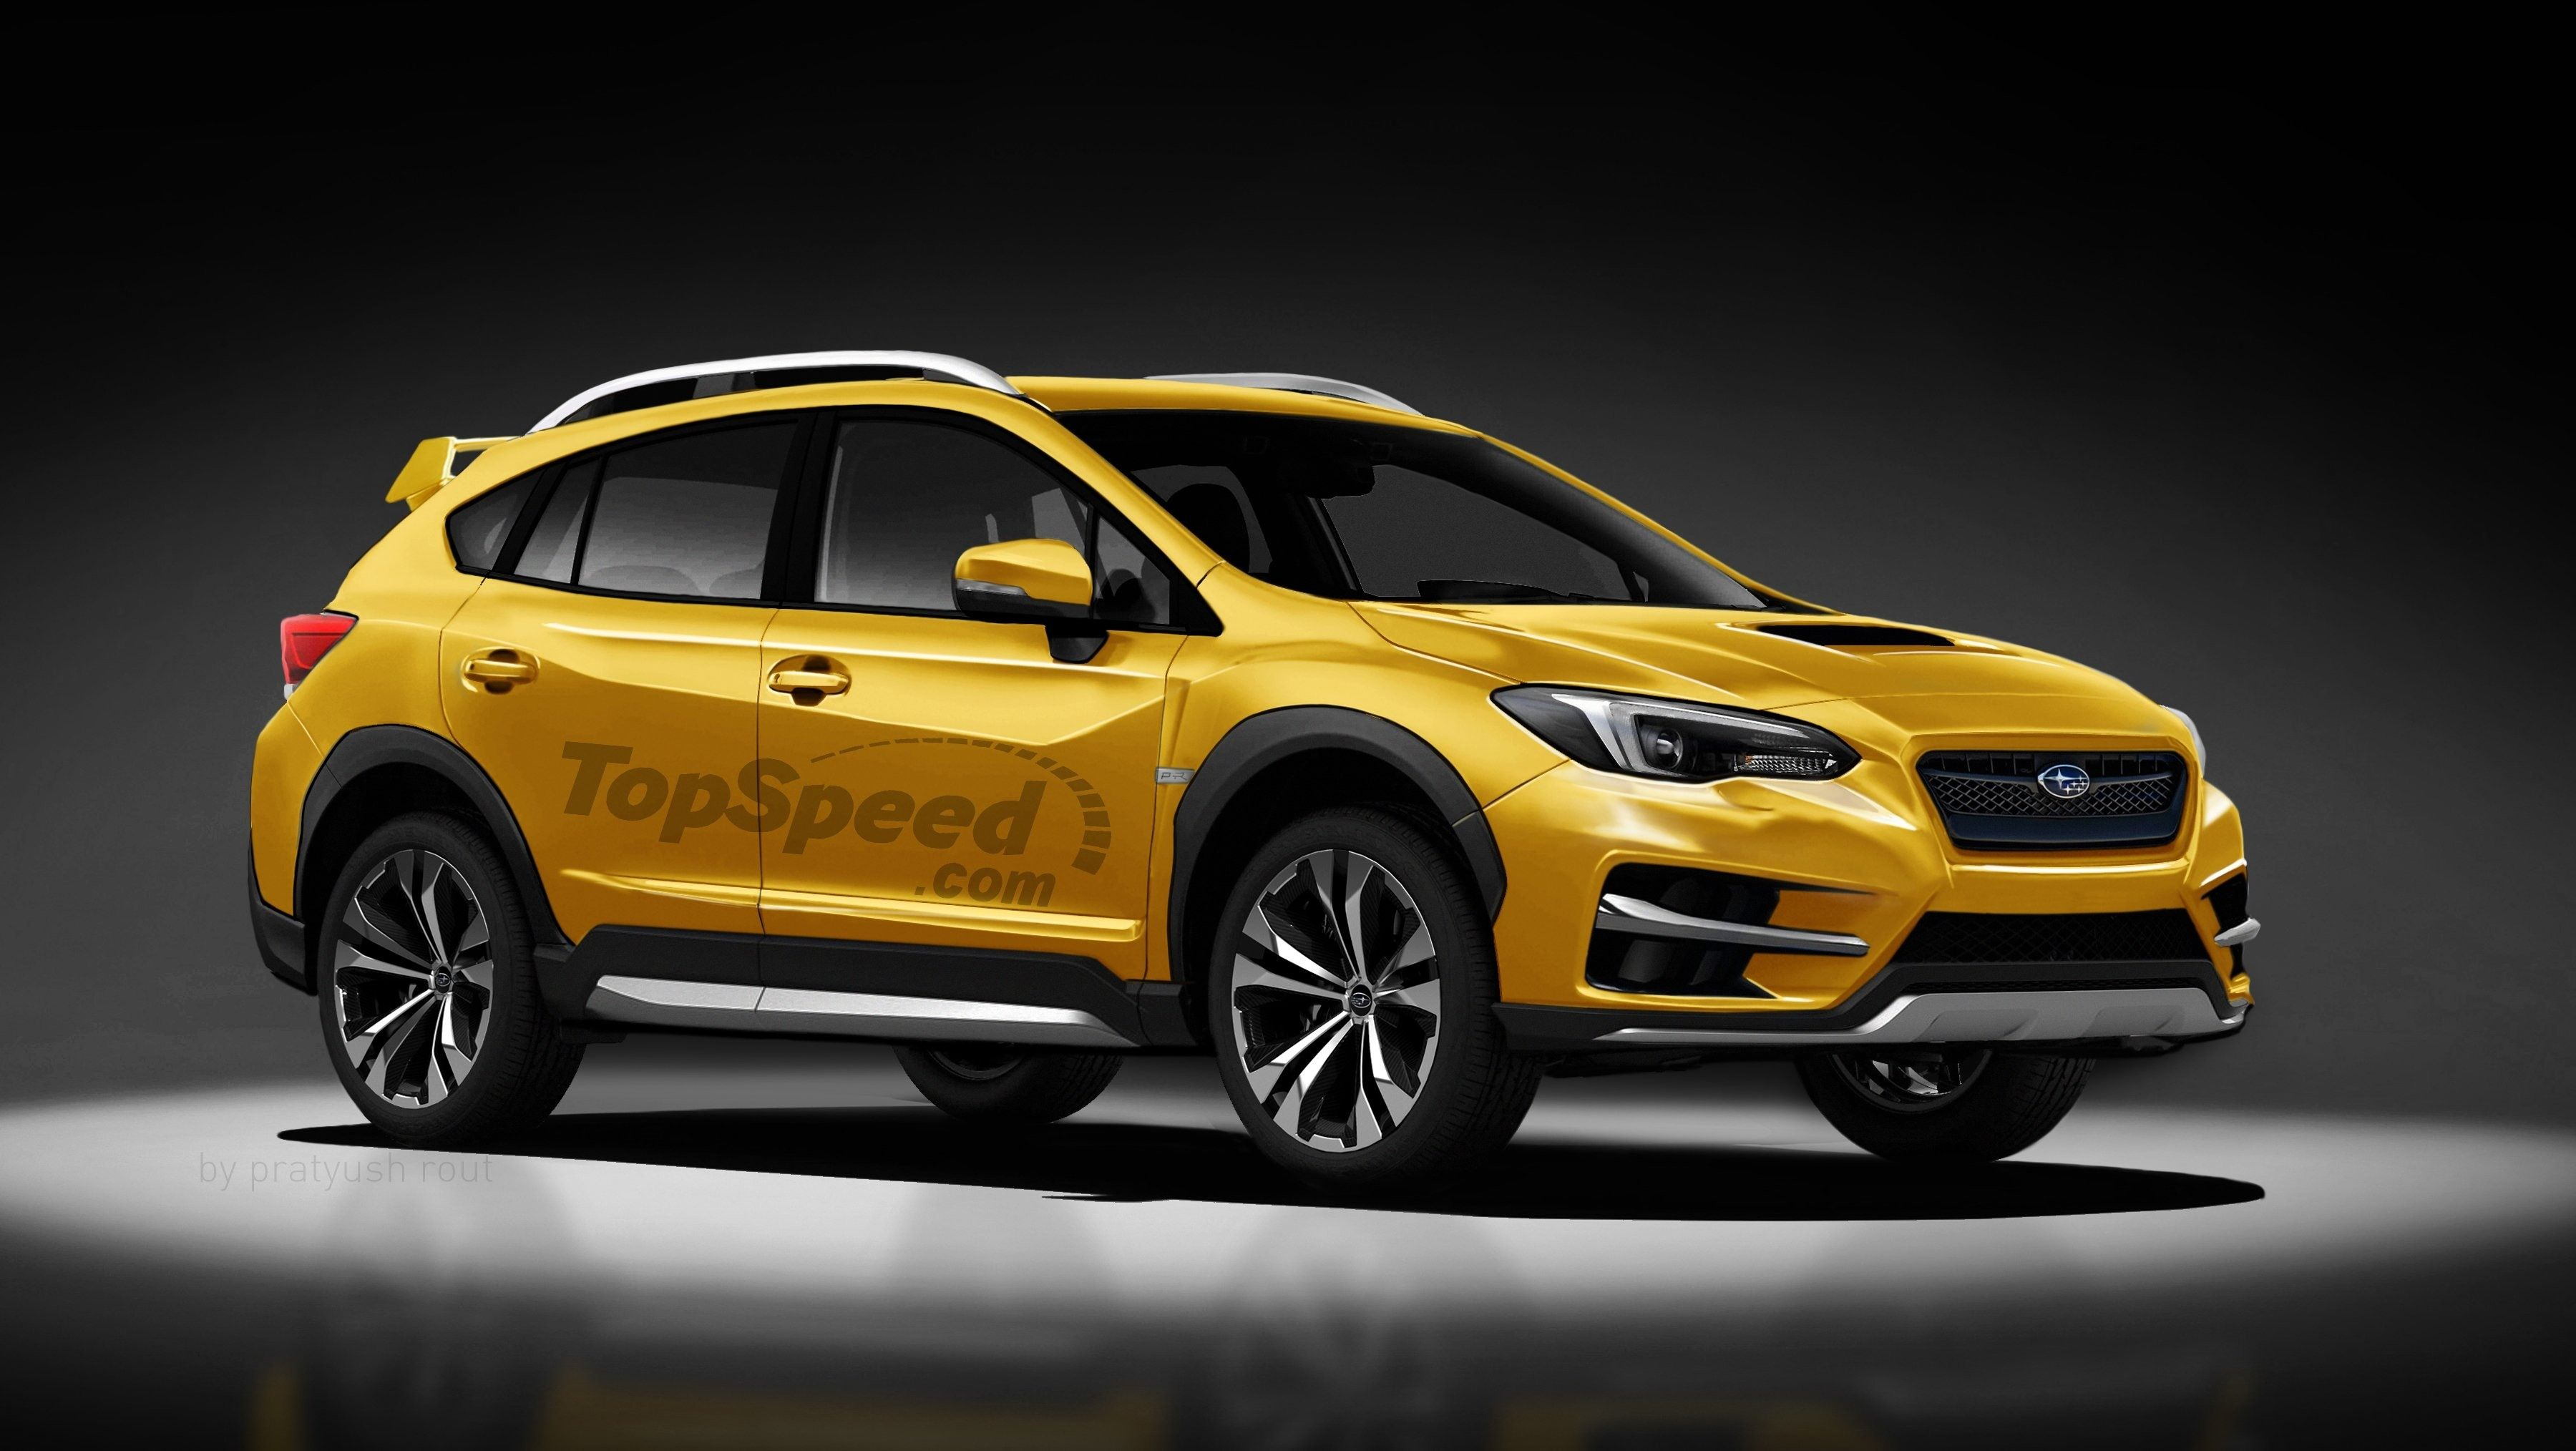 2019 Subaru Xv Crosstrek Turbo Release date and Specs